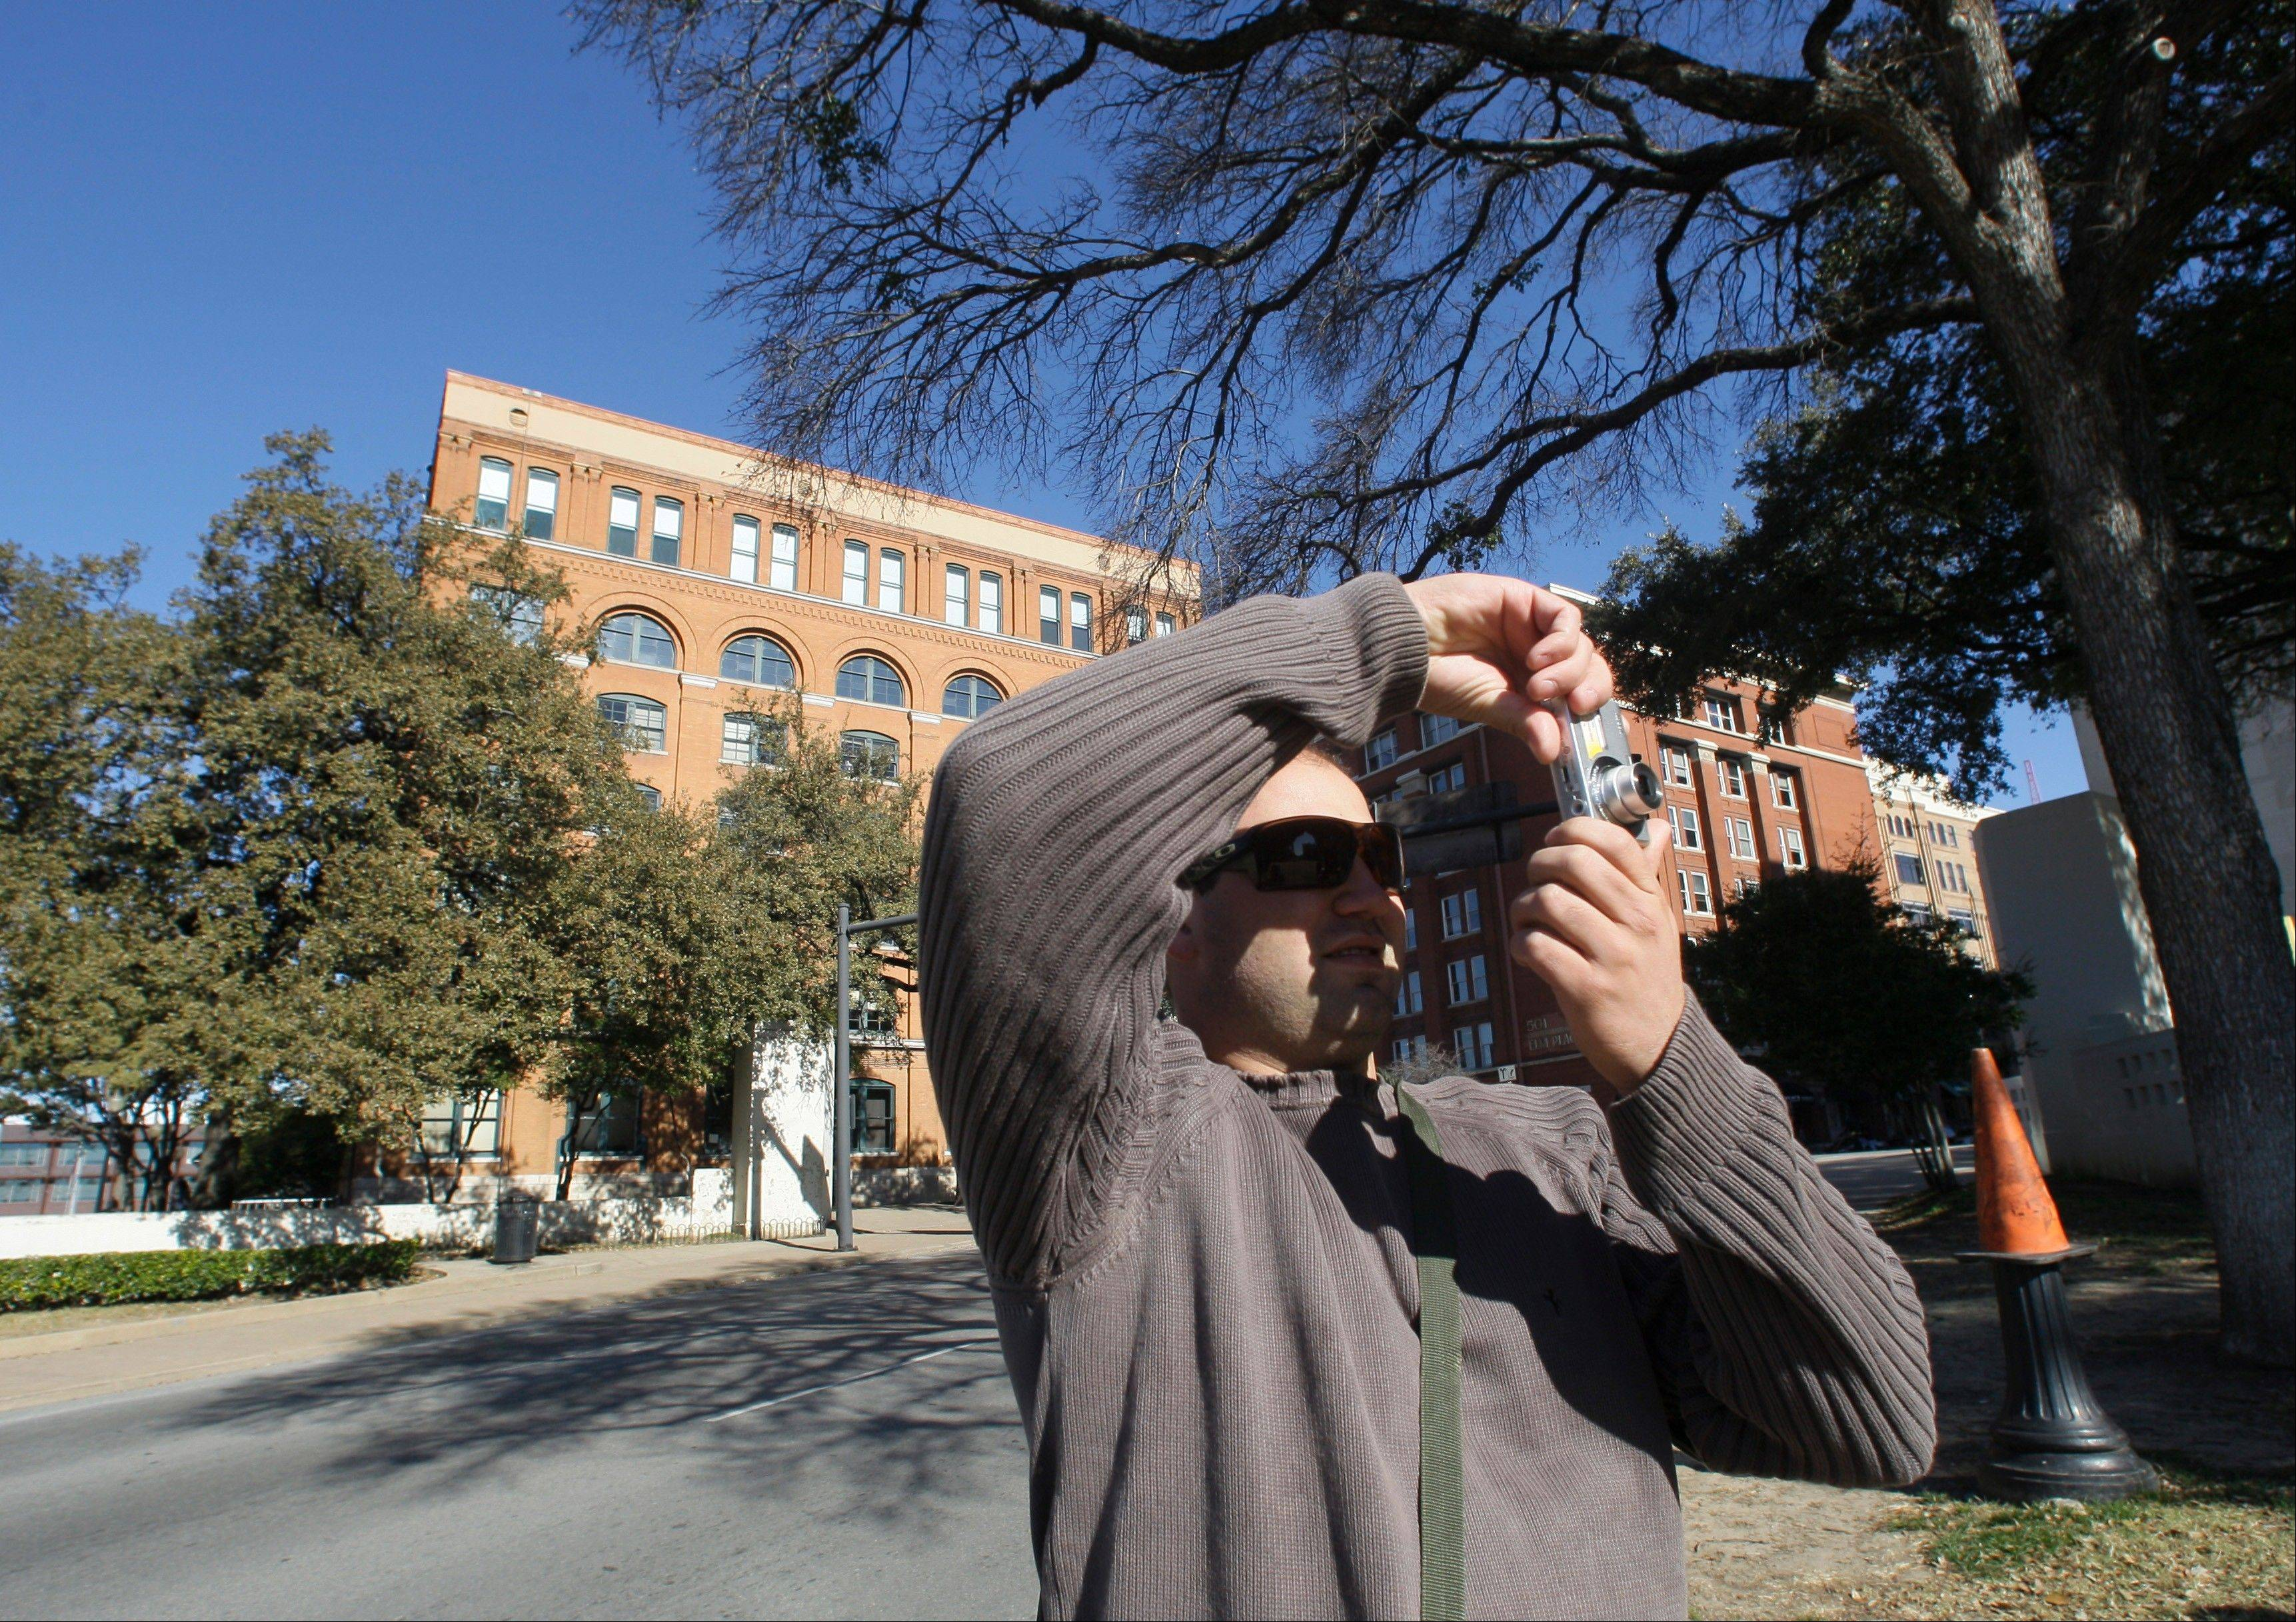 Rafael Boff, of Brazil, takes photographs while visiting Dealey Plaza, site of President John F. Kennedy's assassination, in Dallas. The building once used as a book depository can be seen in the background.